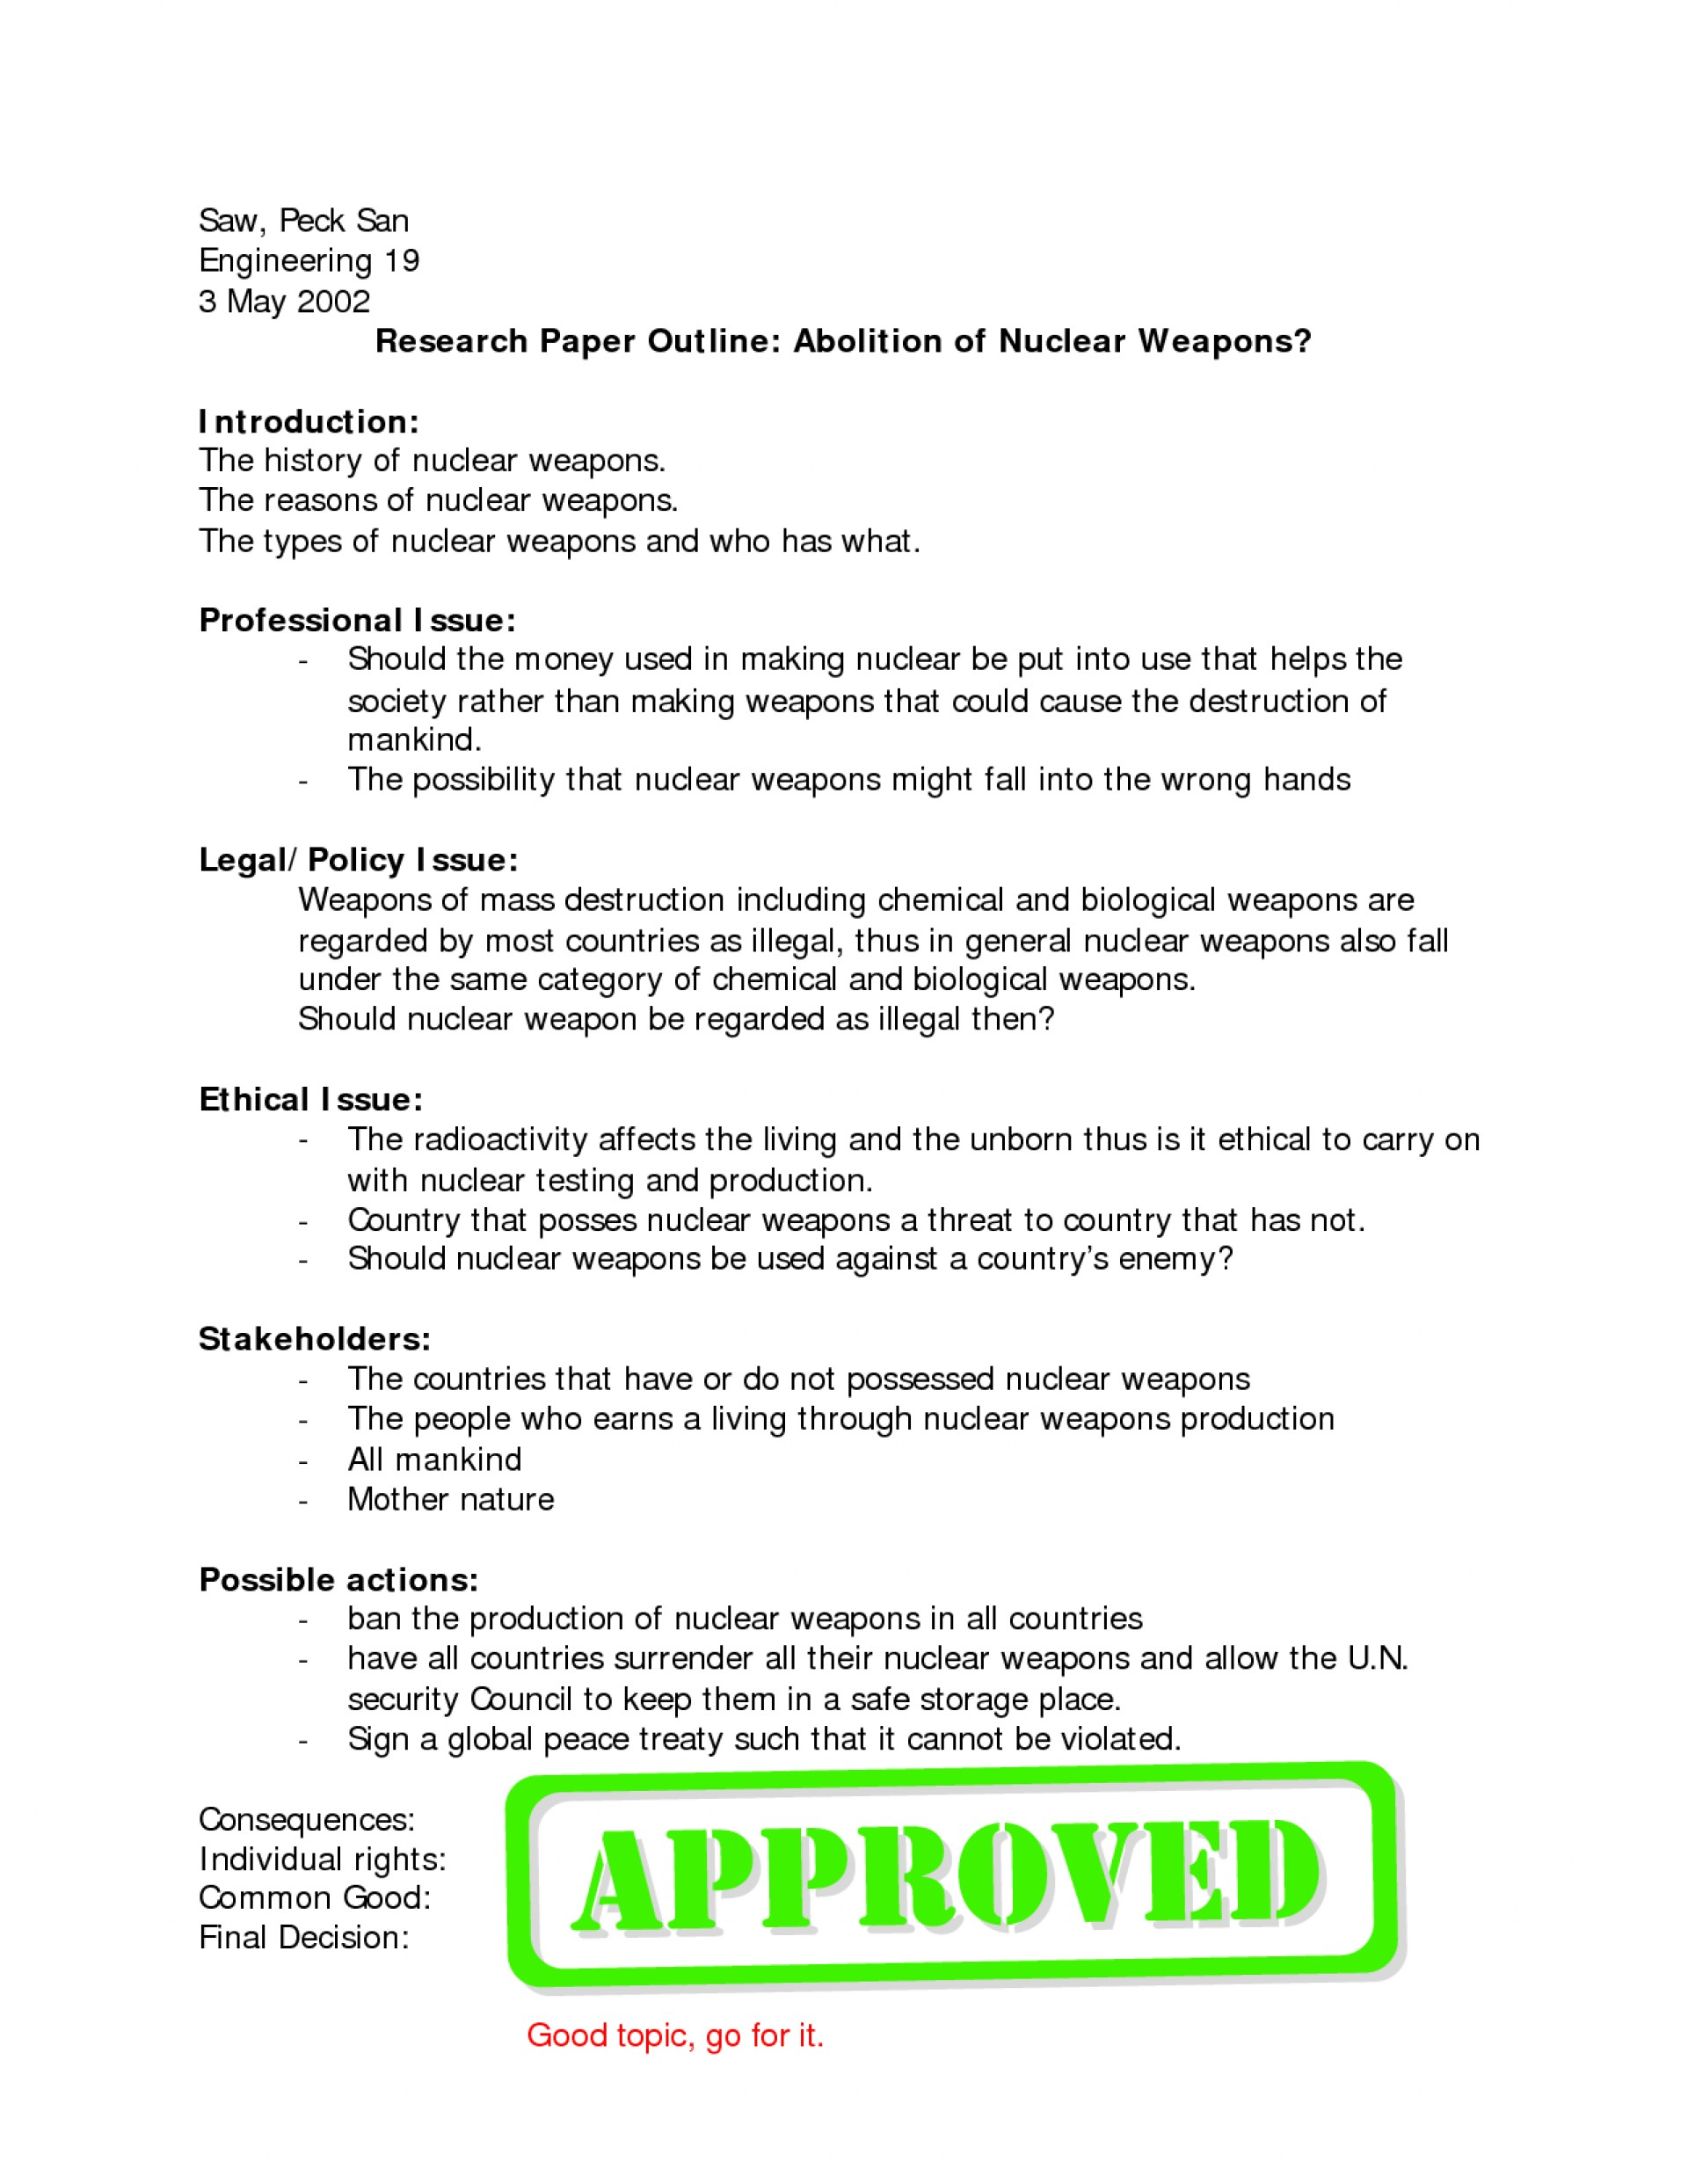 009 How Write Research Paper Outline Online Writing Lab History Term Art Essay Example L Outstanding To An For A Mla Ppt College 1920